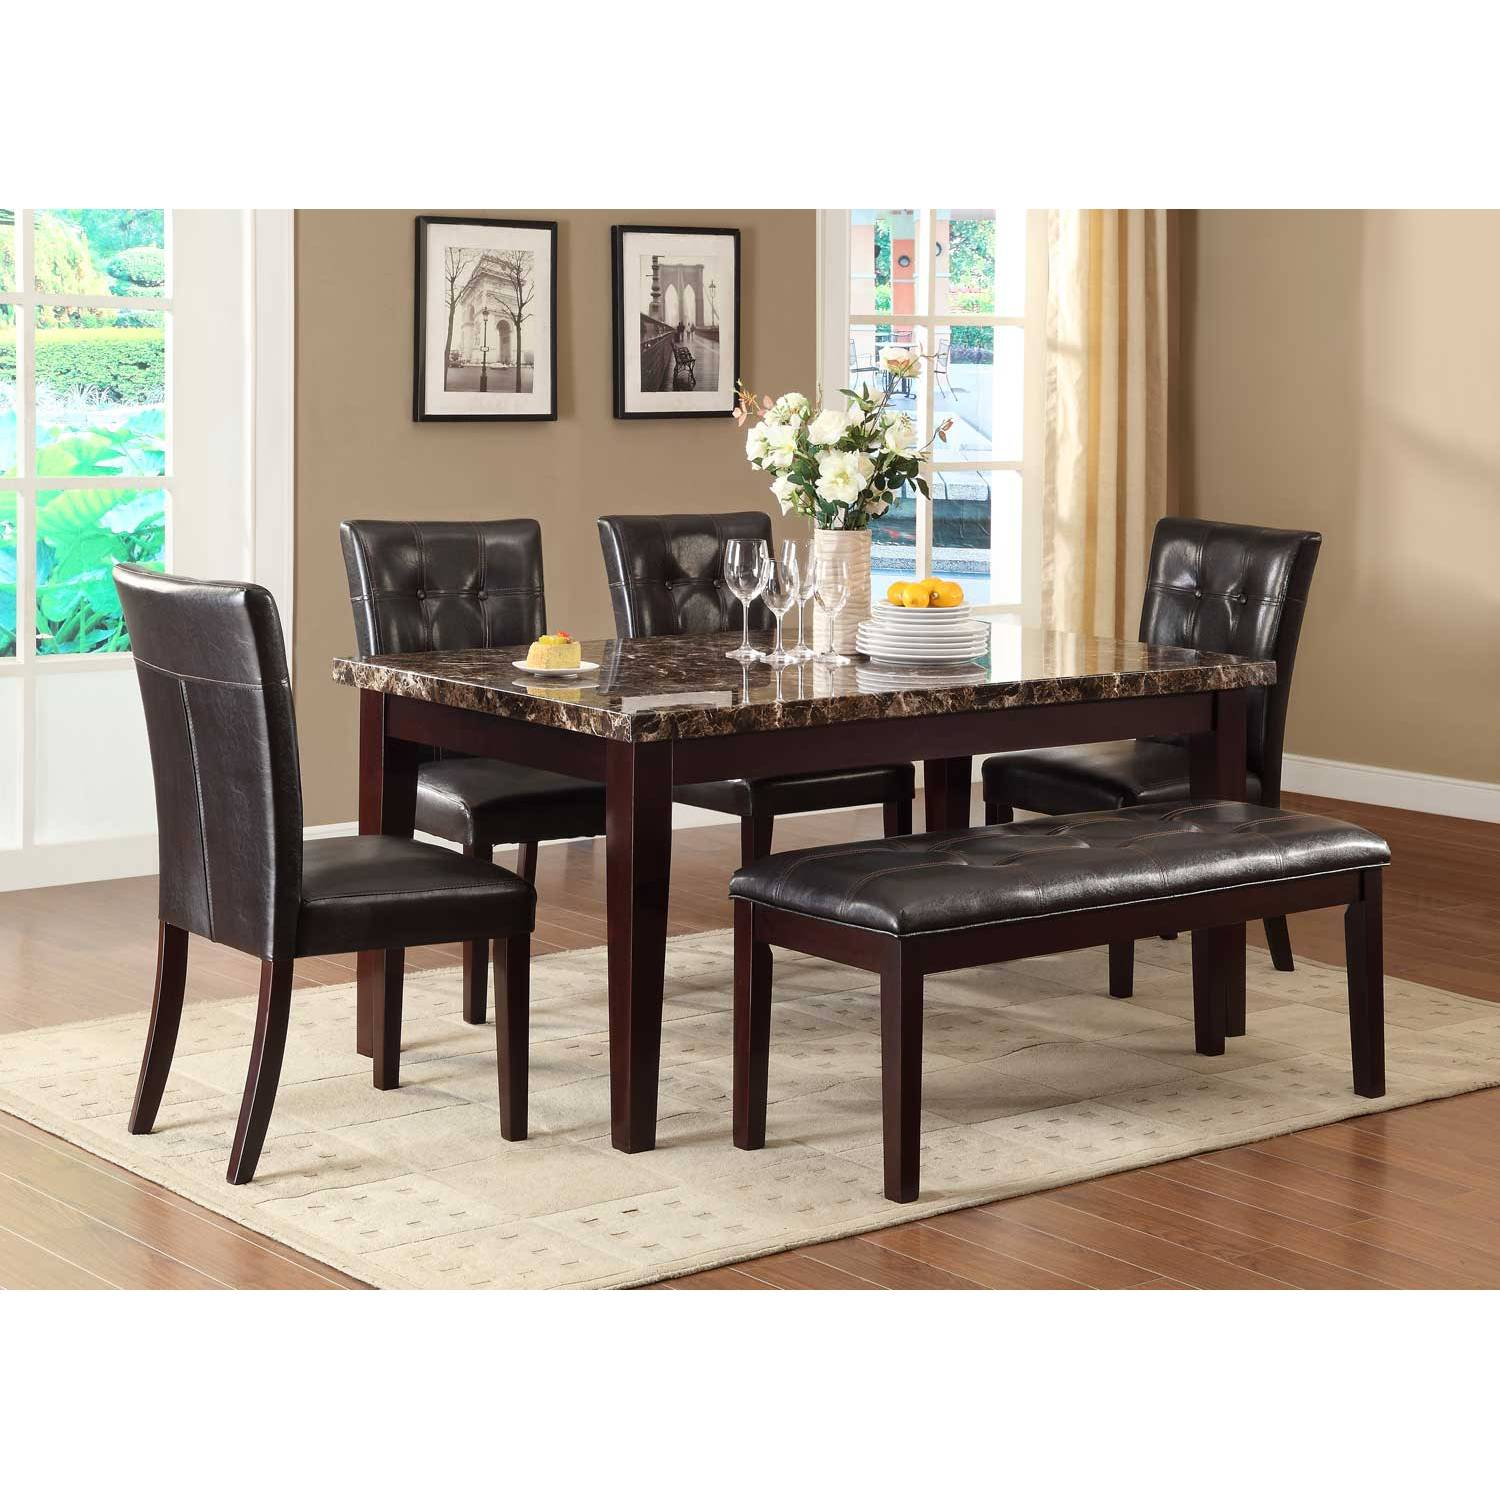 Teague Faux Marble Dining Set Espresso 5pc set TABLE  : 44 1500x1500 from furnituredirects2u.com size 1500 x 1500 jpeg 198kB